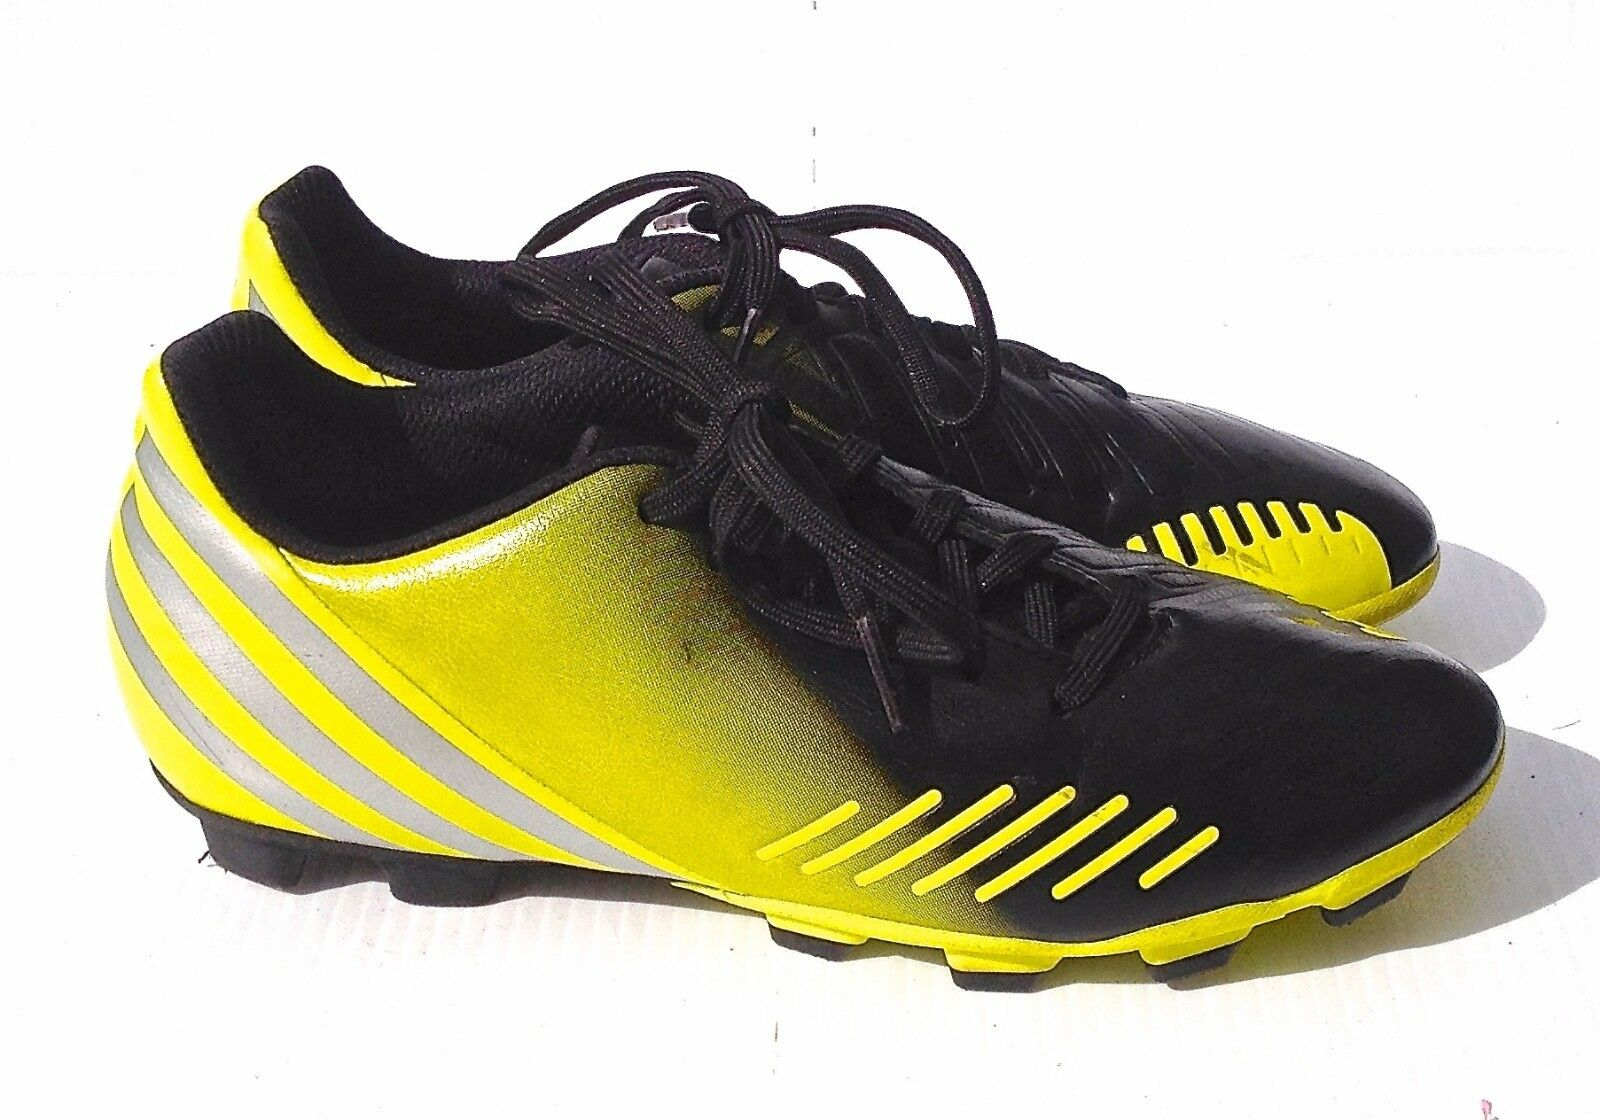 ADIDAS PREDATOR MEN'S/BOY'S SOCCER CLEATS Price reduction Cheap and beautiful fashion